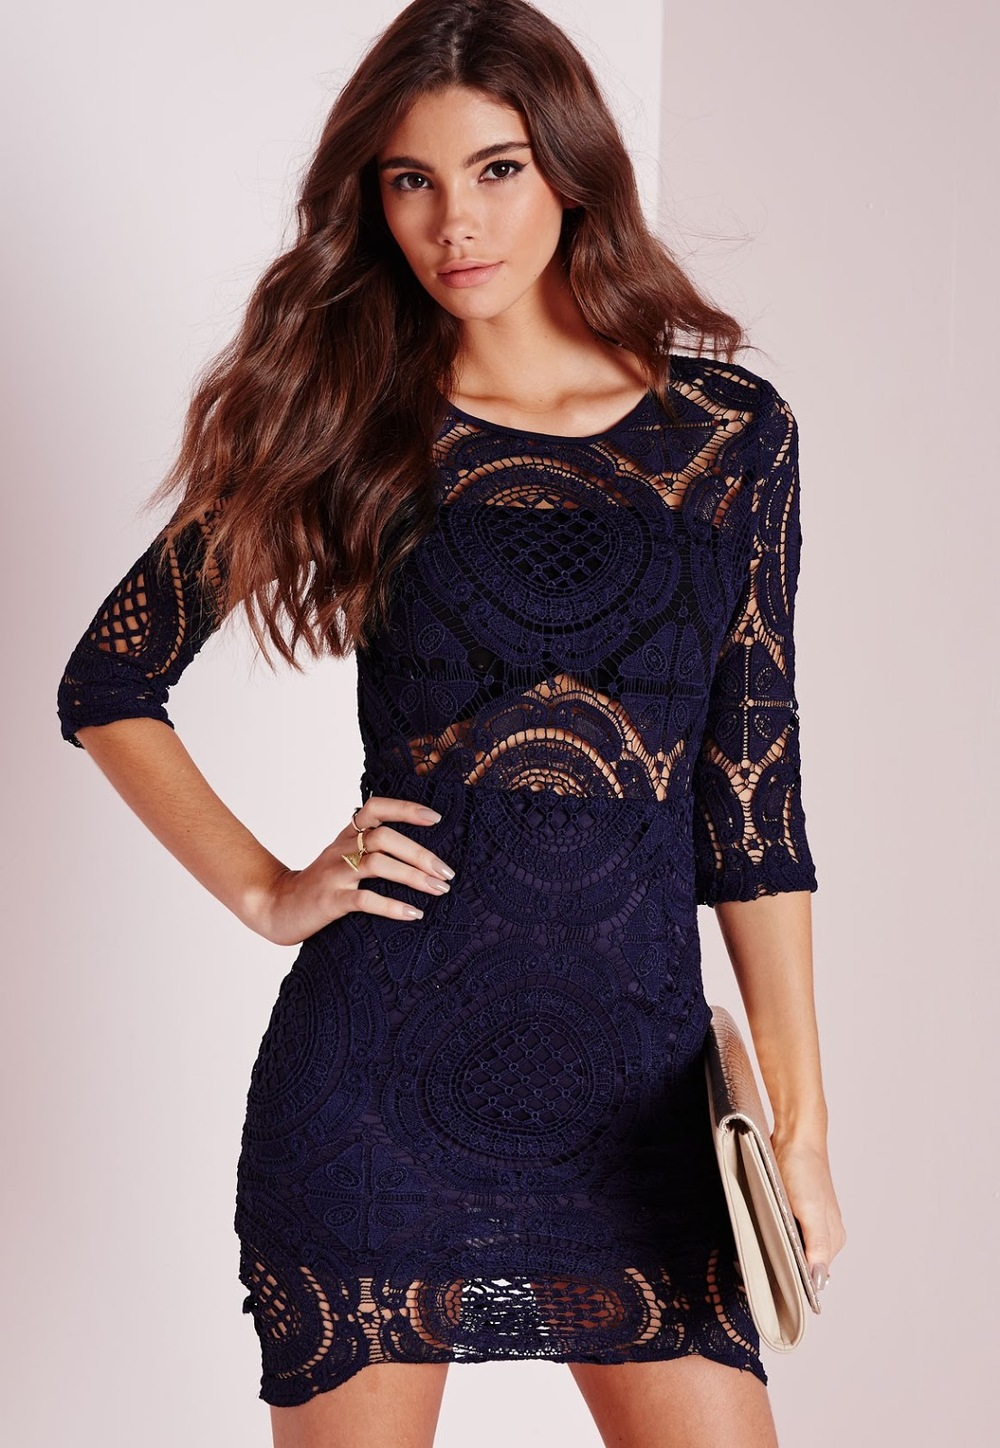 Misguided Lace Bodycon Dress in Navy, $77 at MisguidedUS.com.